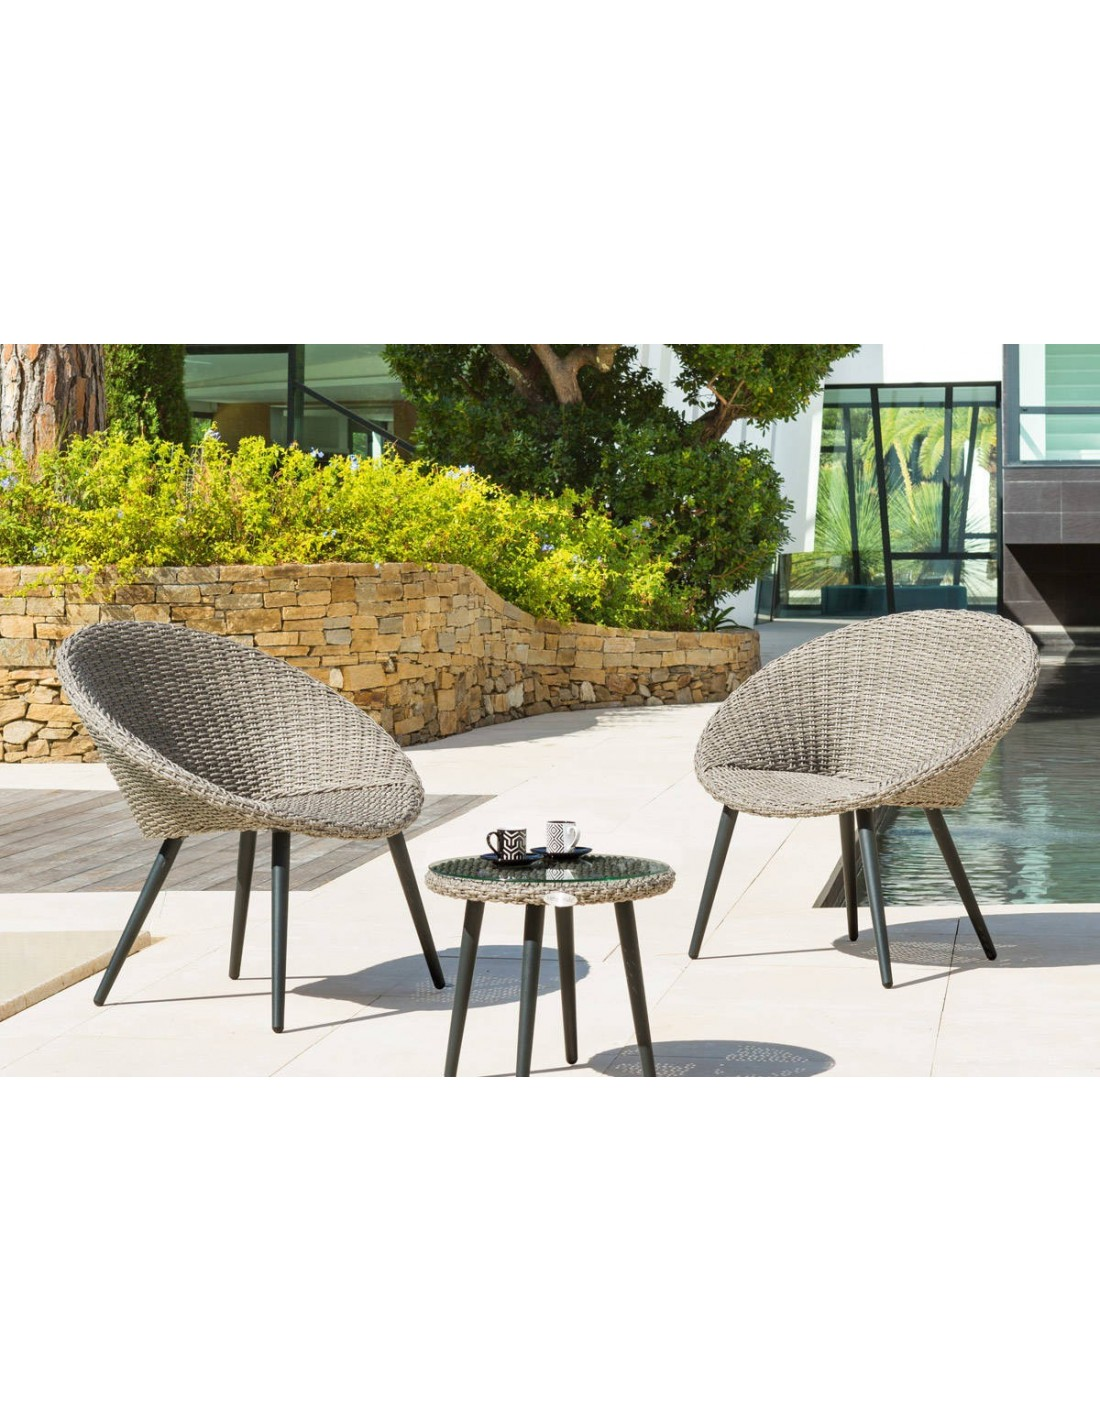 salon de jardin duo canberra 2 fauteuils et table basse hesp ride. Black Bedroom Furniture Sets. Home Design Ideas